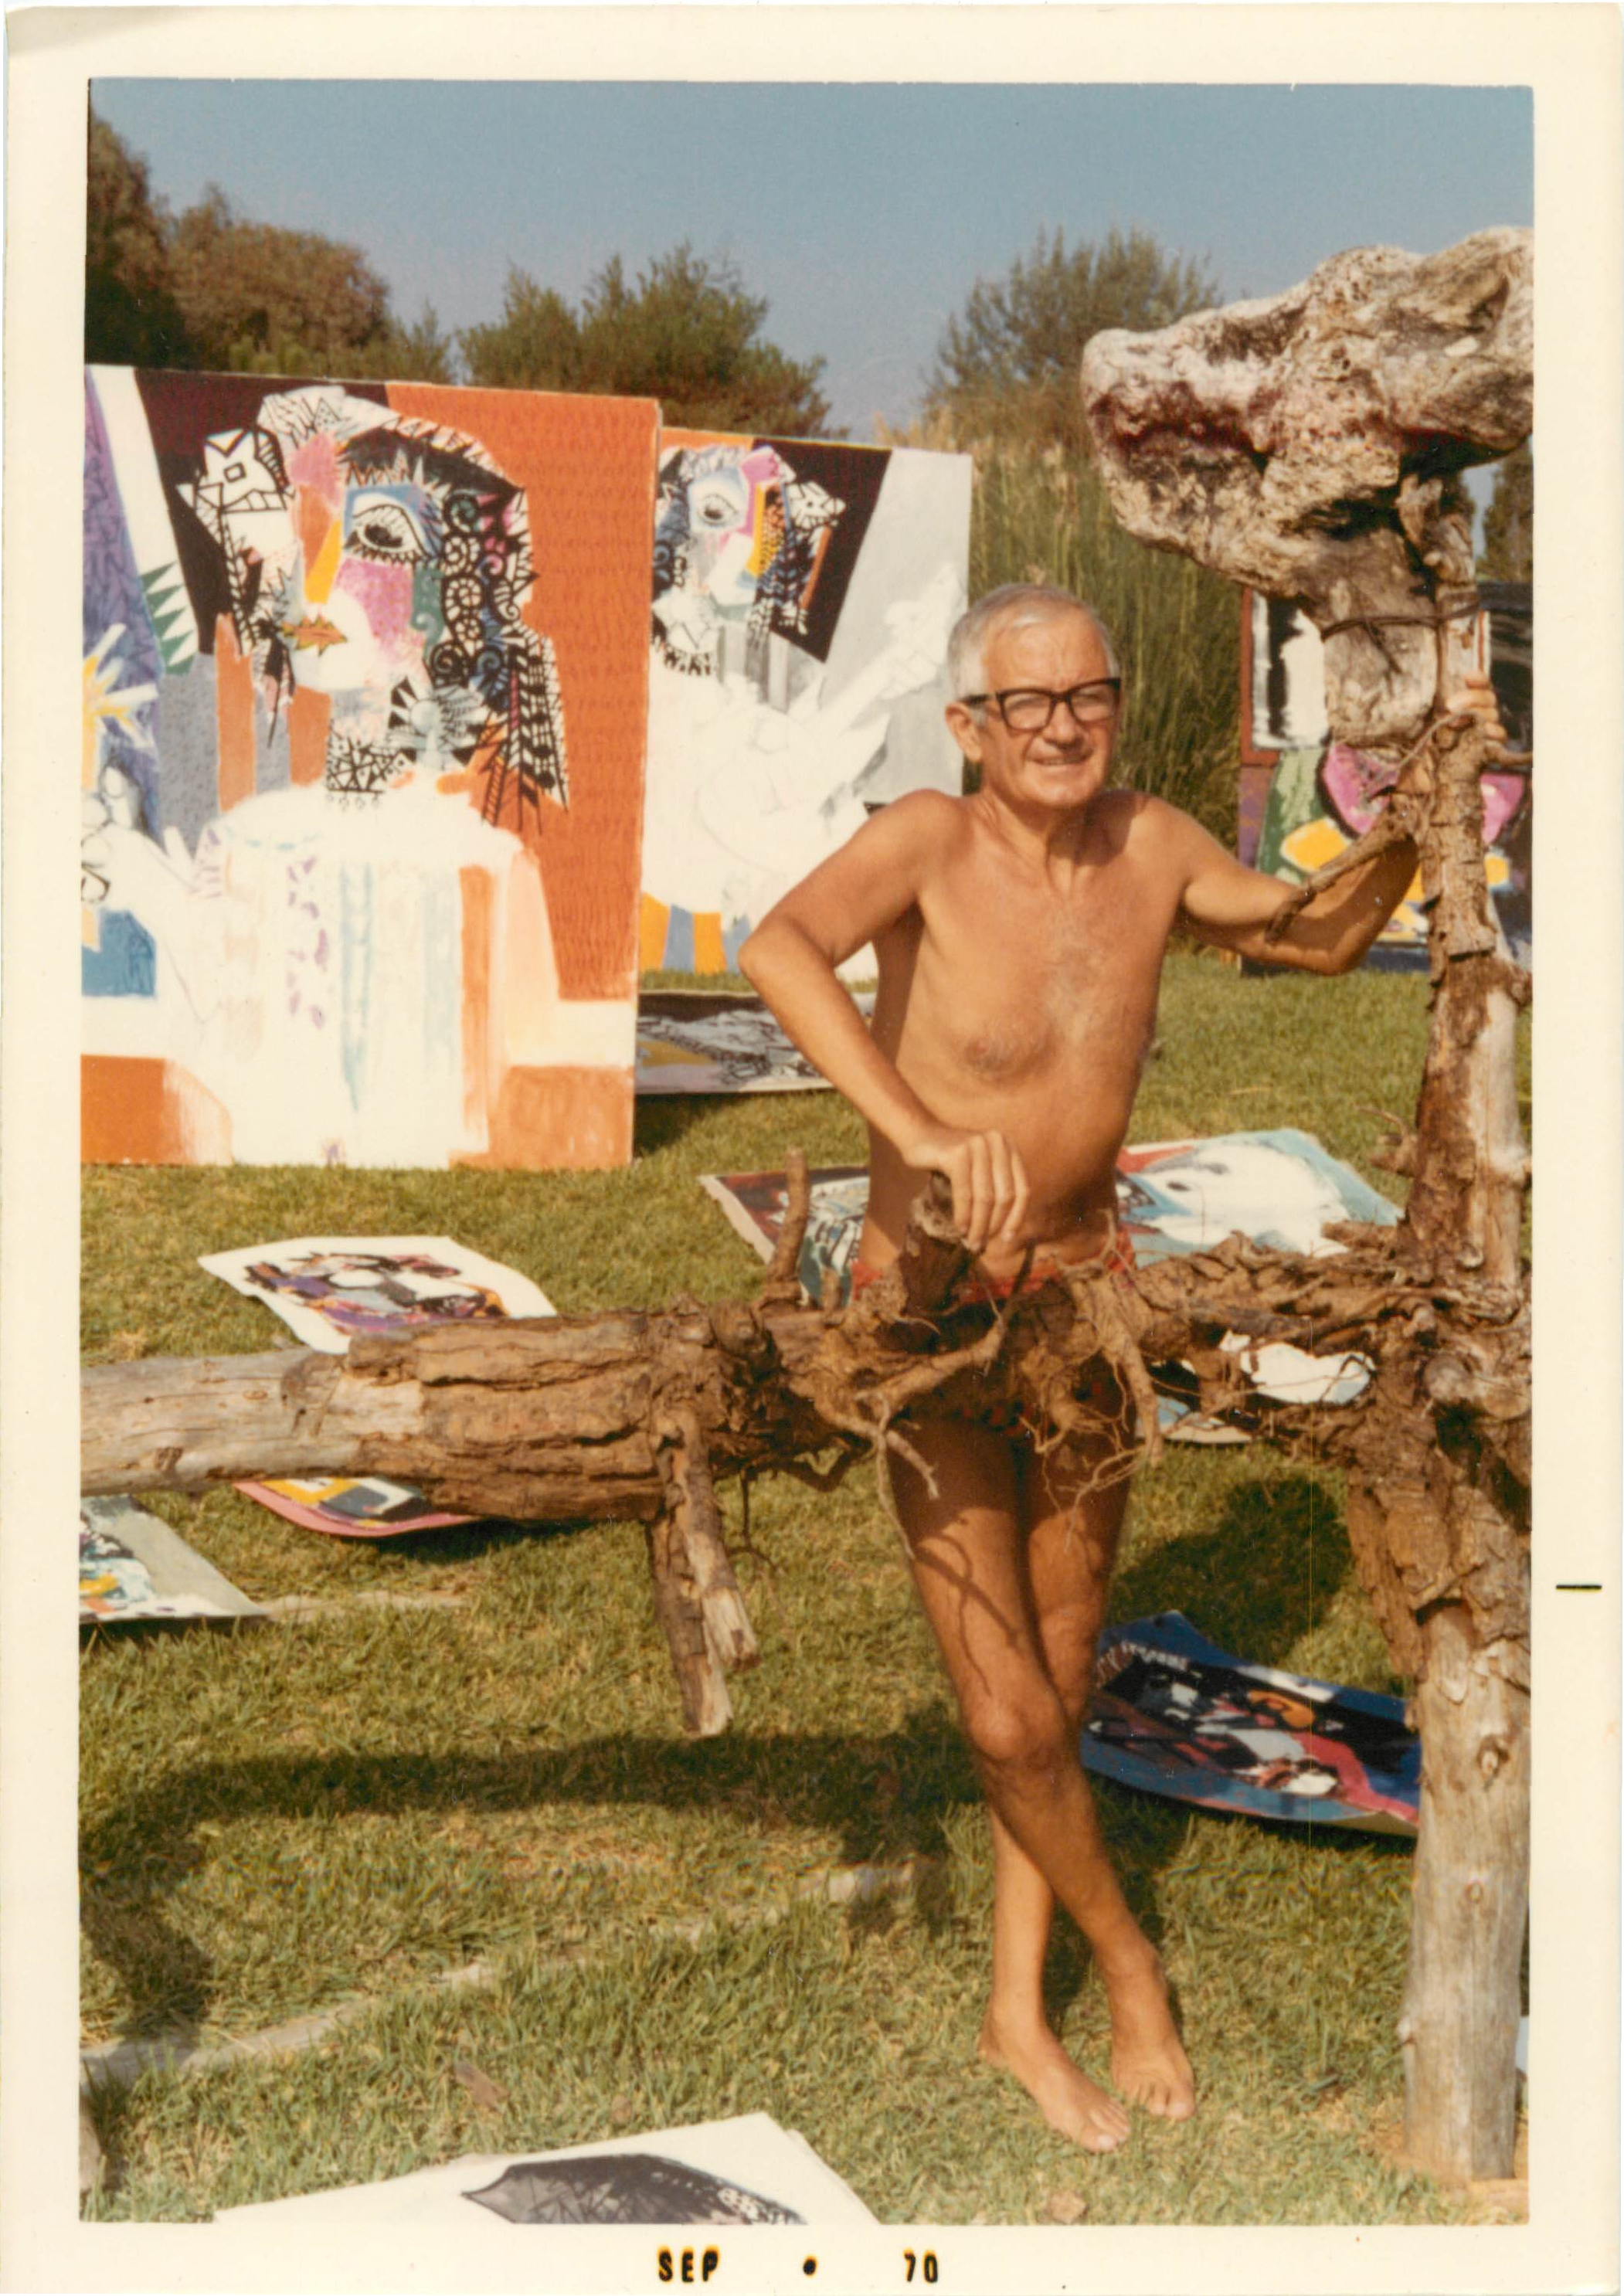 Lorjou with paintings for the Sharon Tate exhibit (c.1969-70)